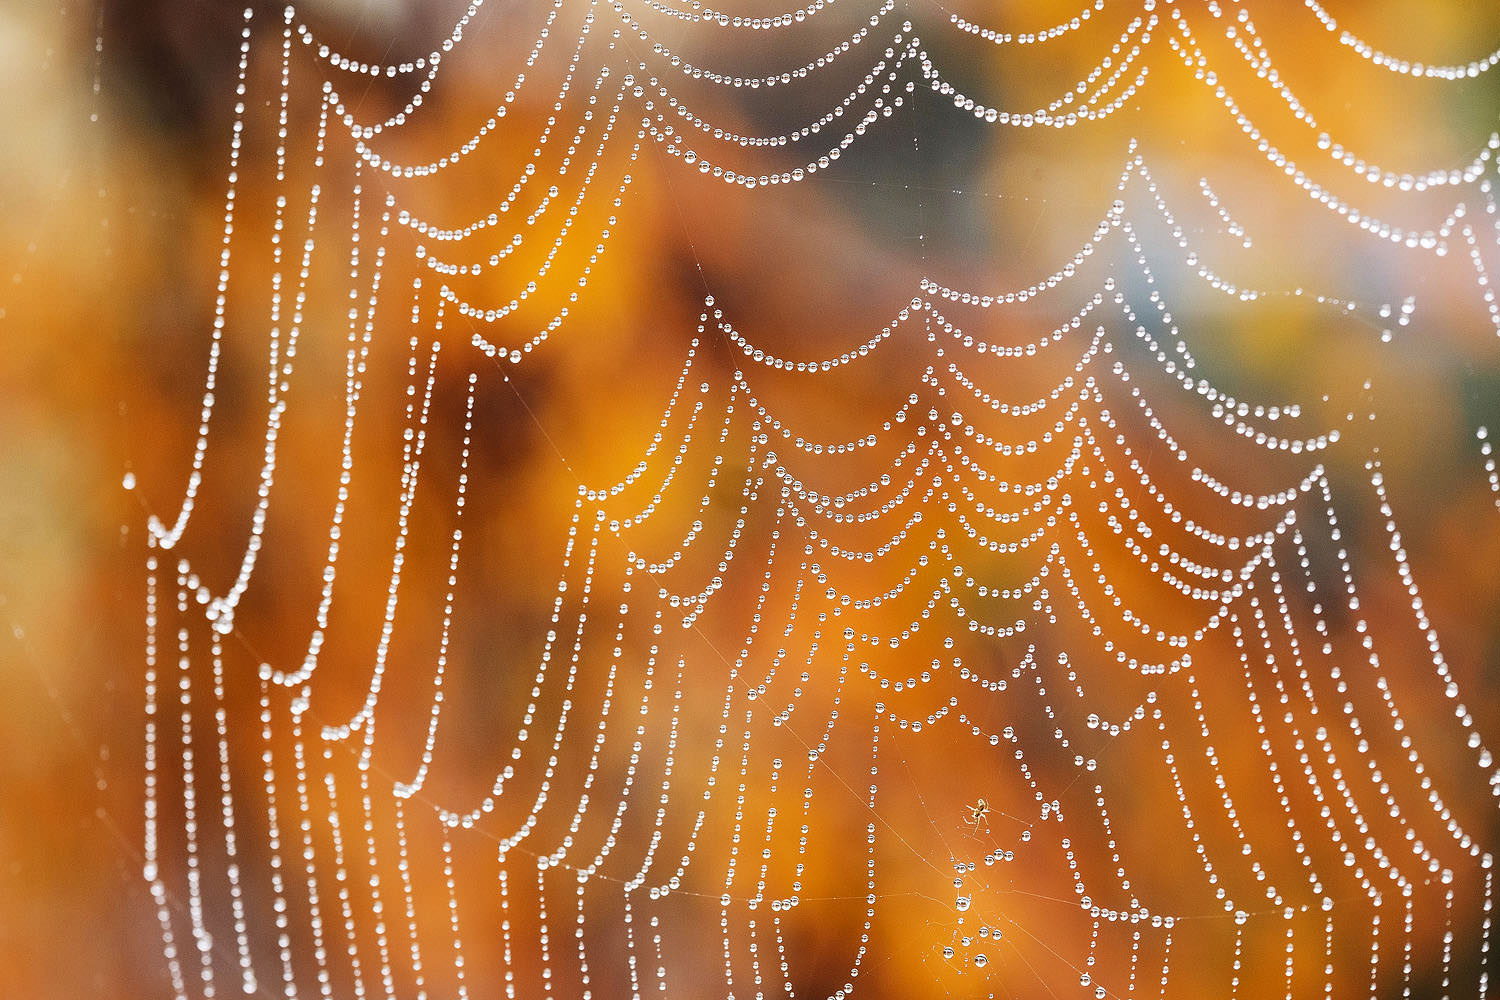 Raindrops on a spider web in the fall